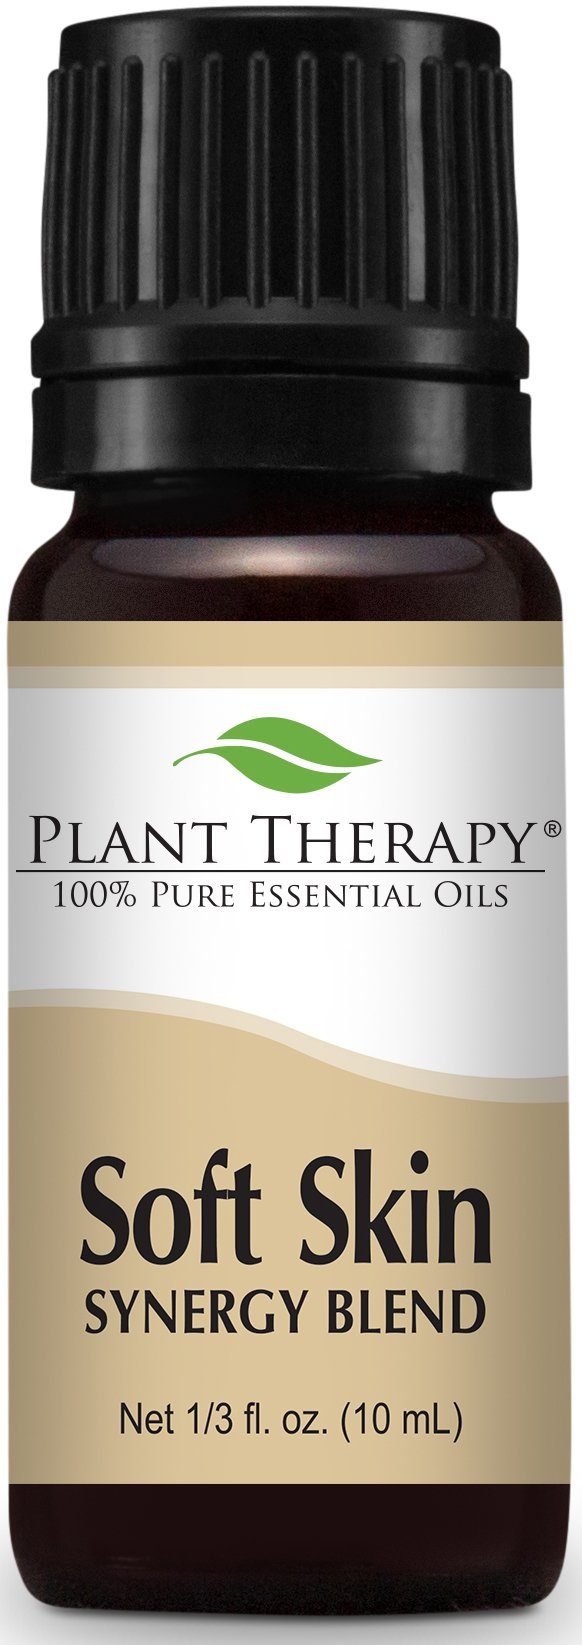 Plant Therapy Soft Skin Synergy Essential Oil 10 mL (1/3 oz) 100% Pure, Undiluted, Therapeutic Grade